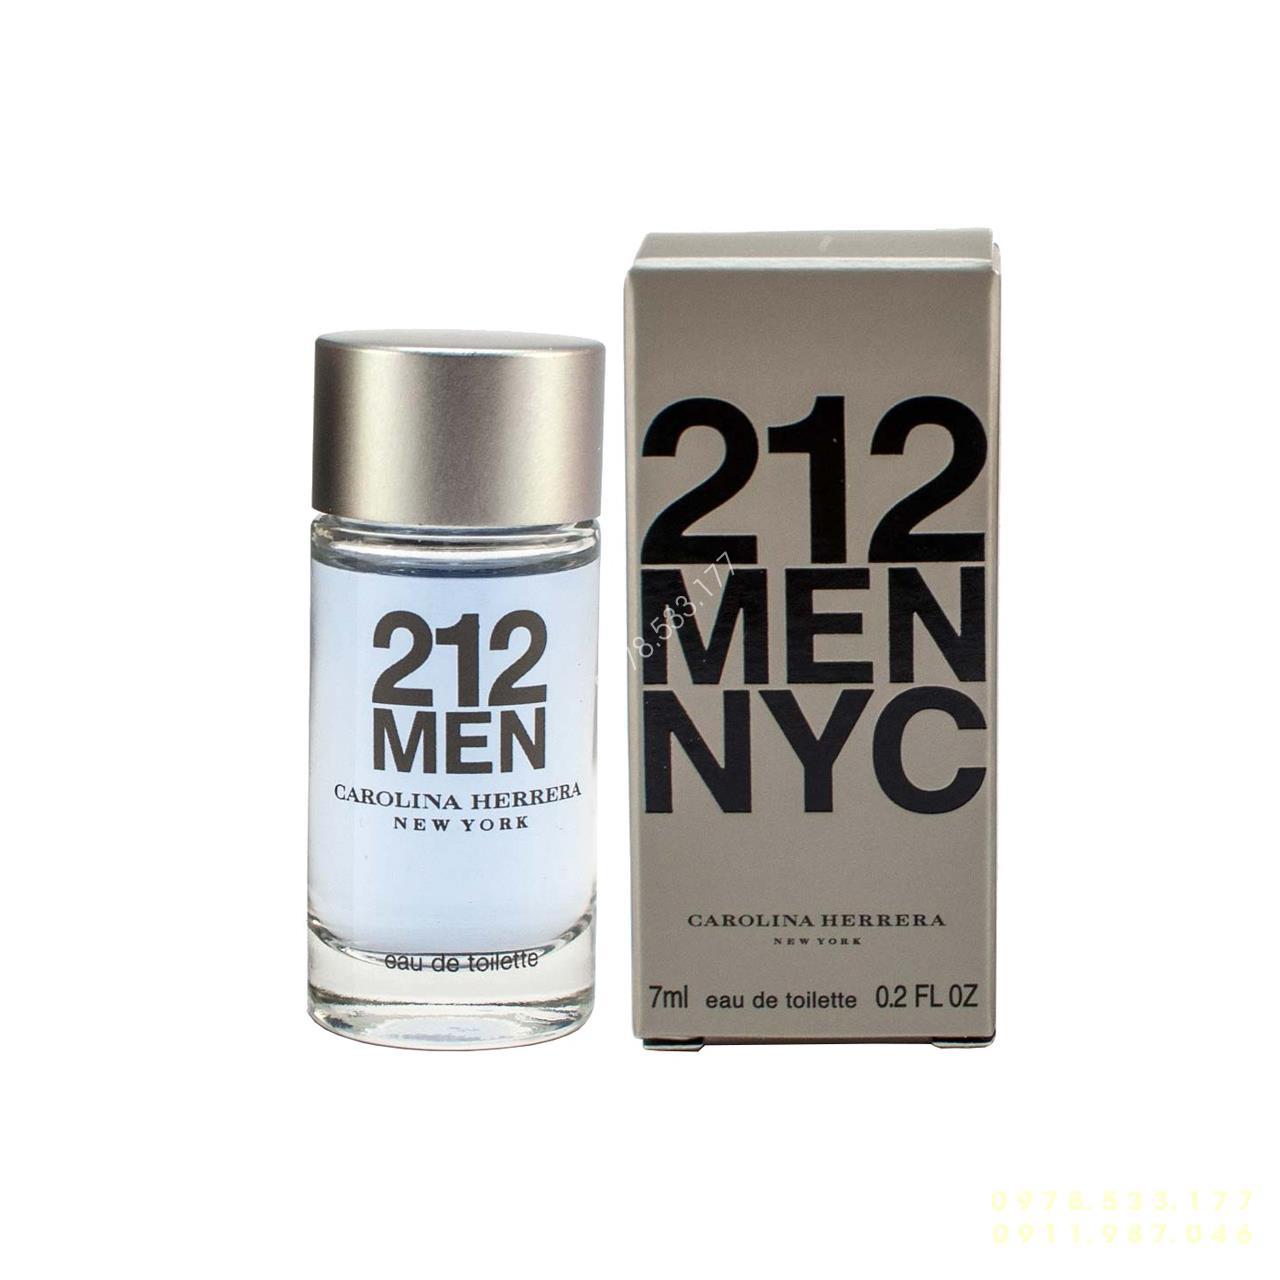 nuoc-hoa-nam-carolina-herrera-212-men-nyc-7ml-chinh-hang-pn100033